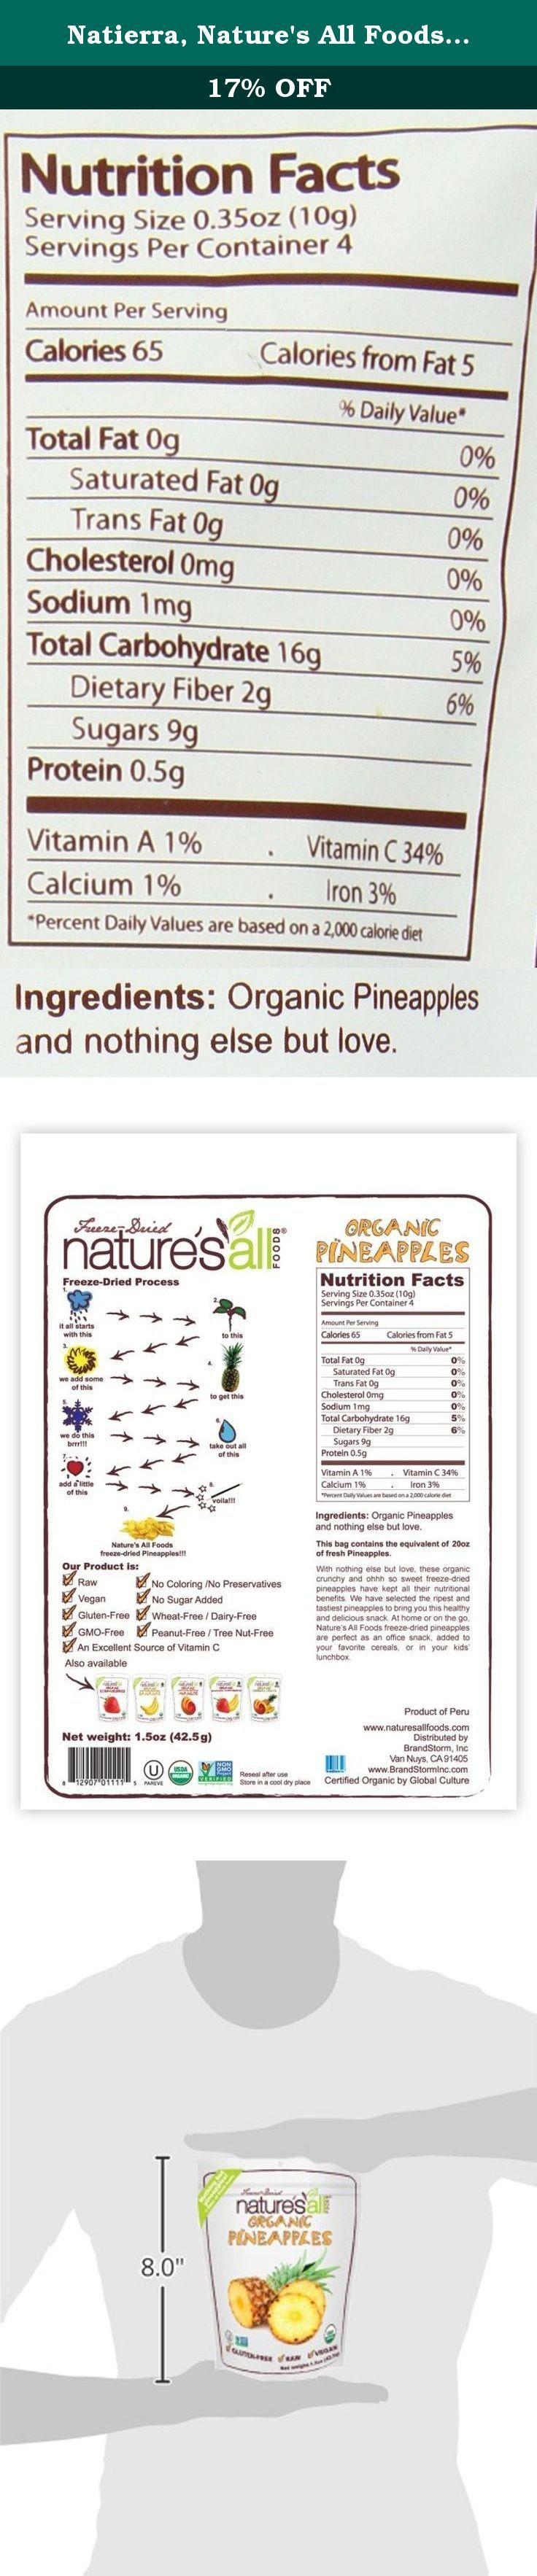 Natierra, Nature's All Foods Freeze-Dried Pineapples, 1.5 Ounce. Nature's All Foods is an Organic and Fair Trade freeze–dried produce line that offers an abundance of healthful goodness in each serving. Crunchy and oh-so-sweet freeze-dried fruits and veggies maintain all of their vital nutrients and vibrant flavor, so you can rest assured that the food you are eating is not only delicious and convenient, but also healthy. They come packaged in a grab-and-go style pouch for any time eating...